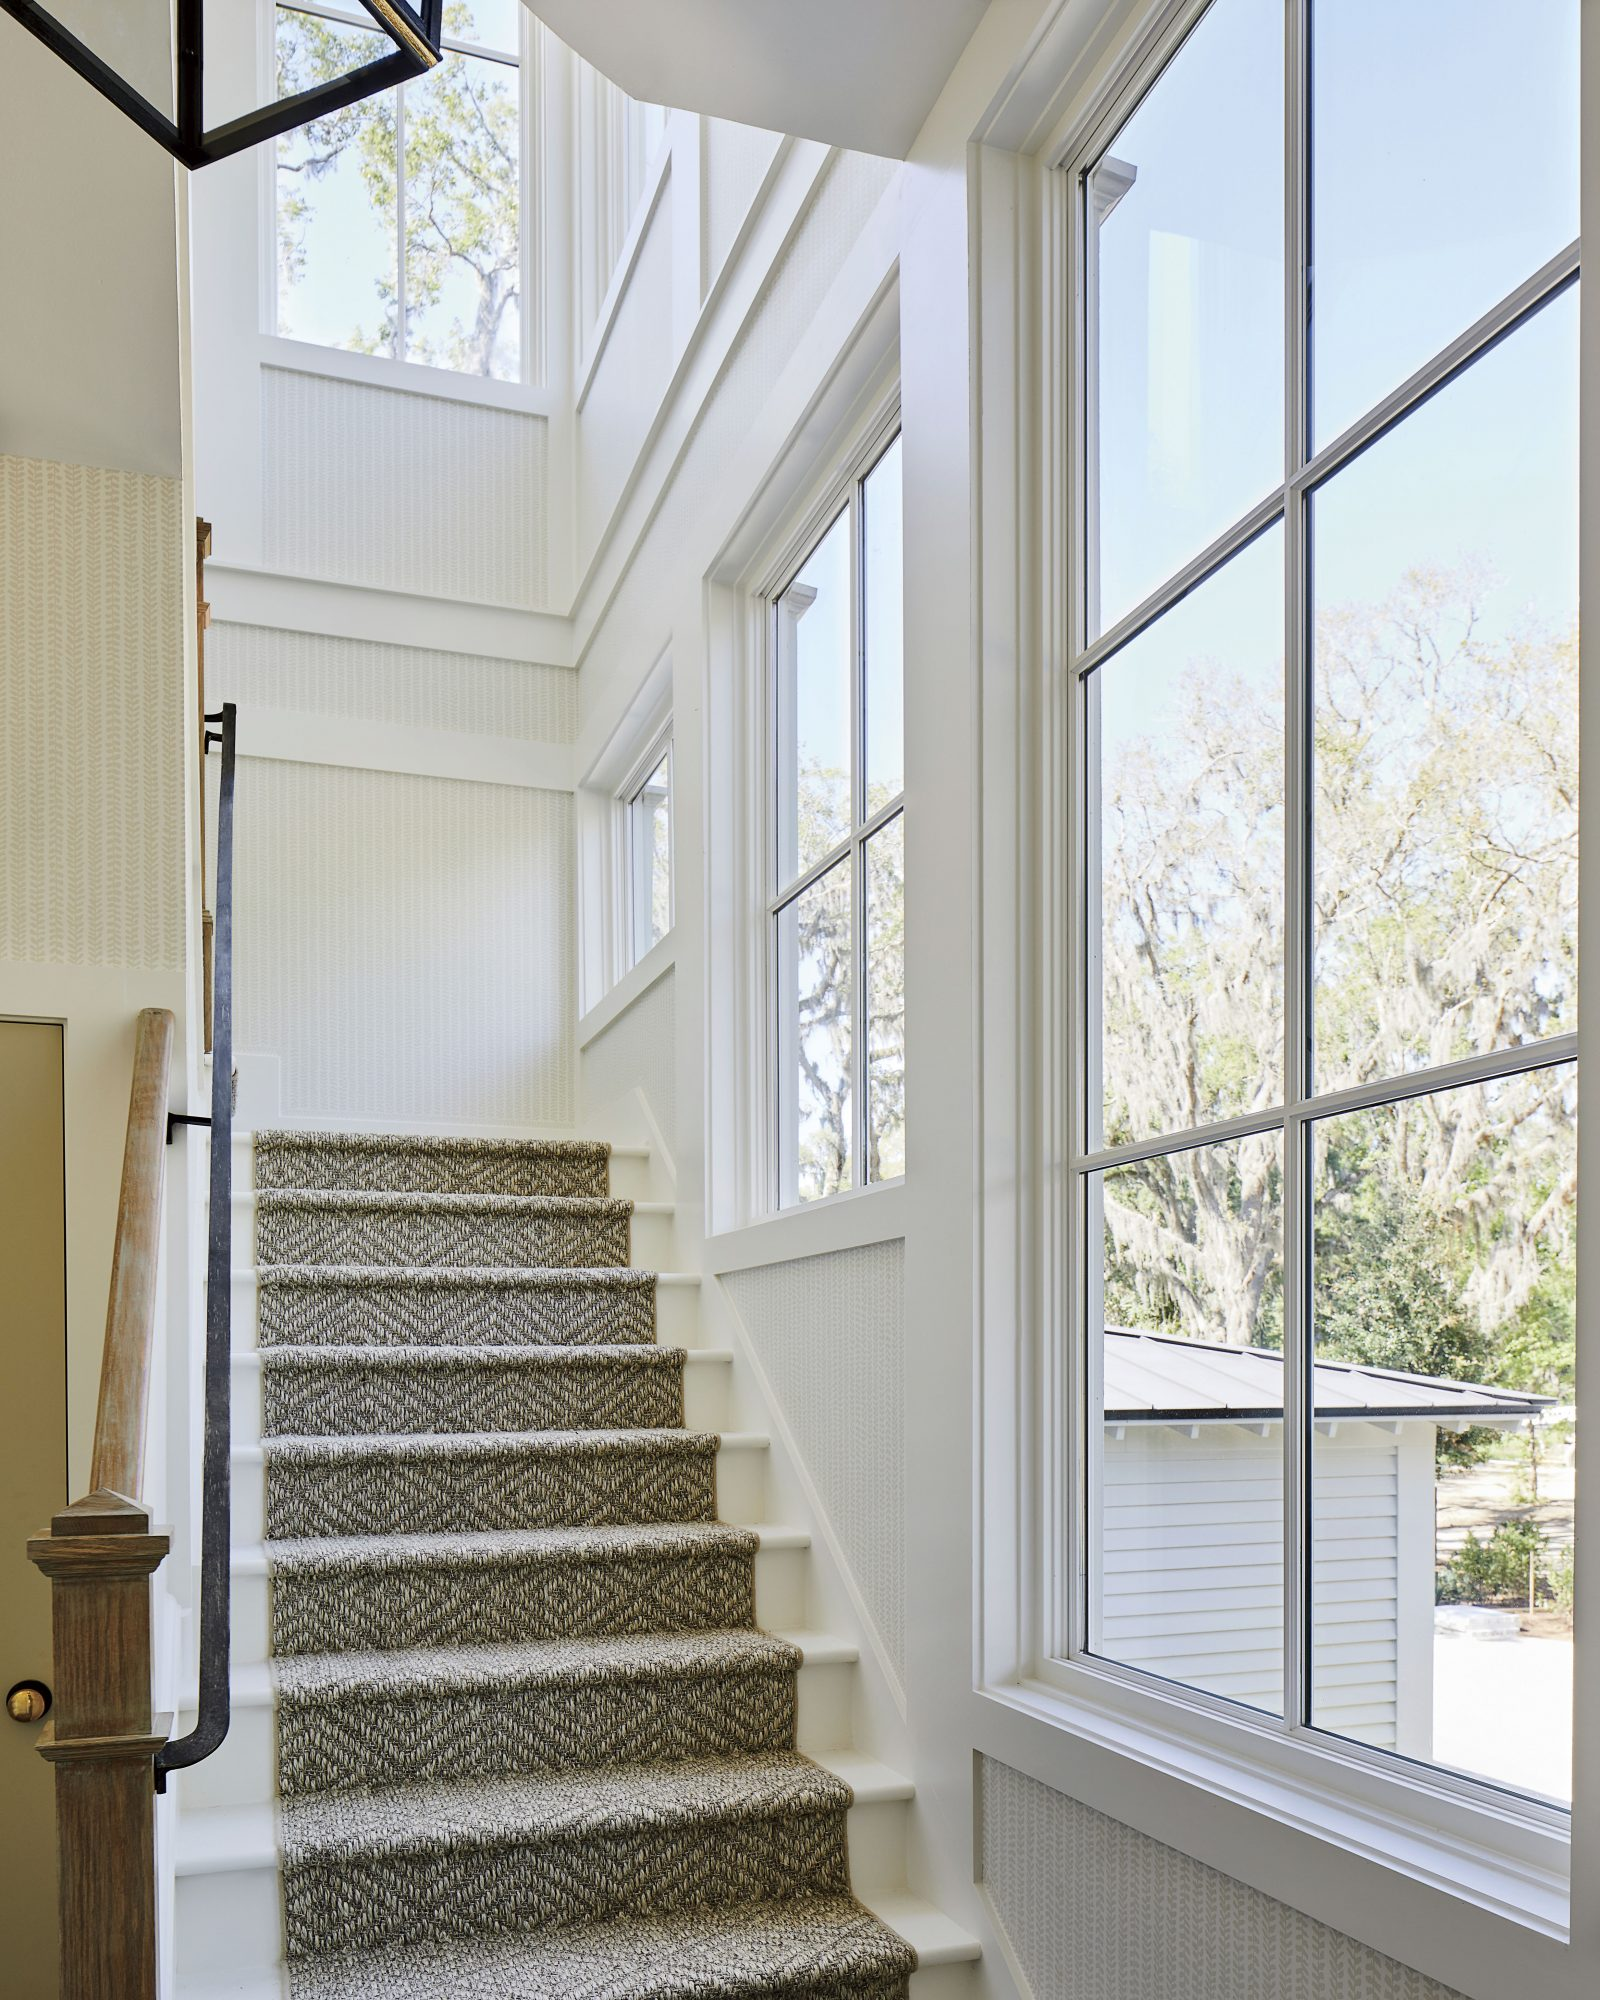 2019 Idea House Stair Windows